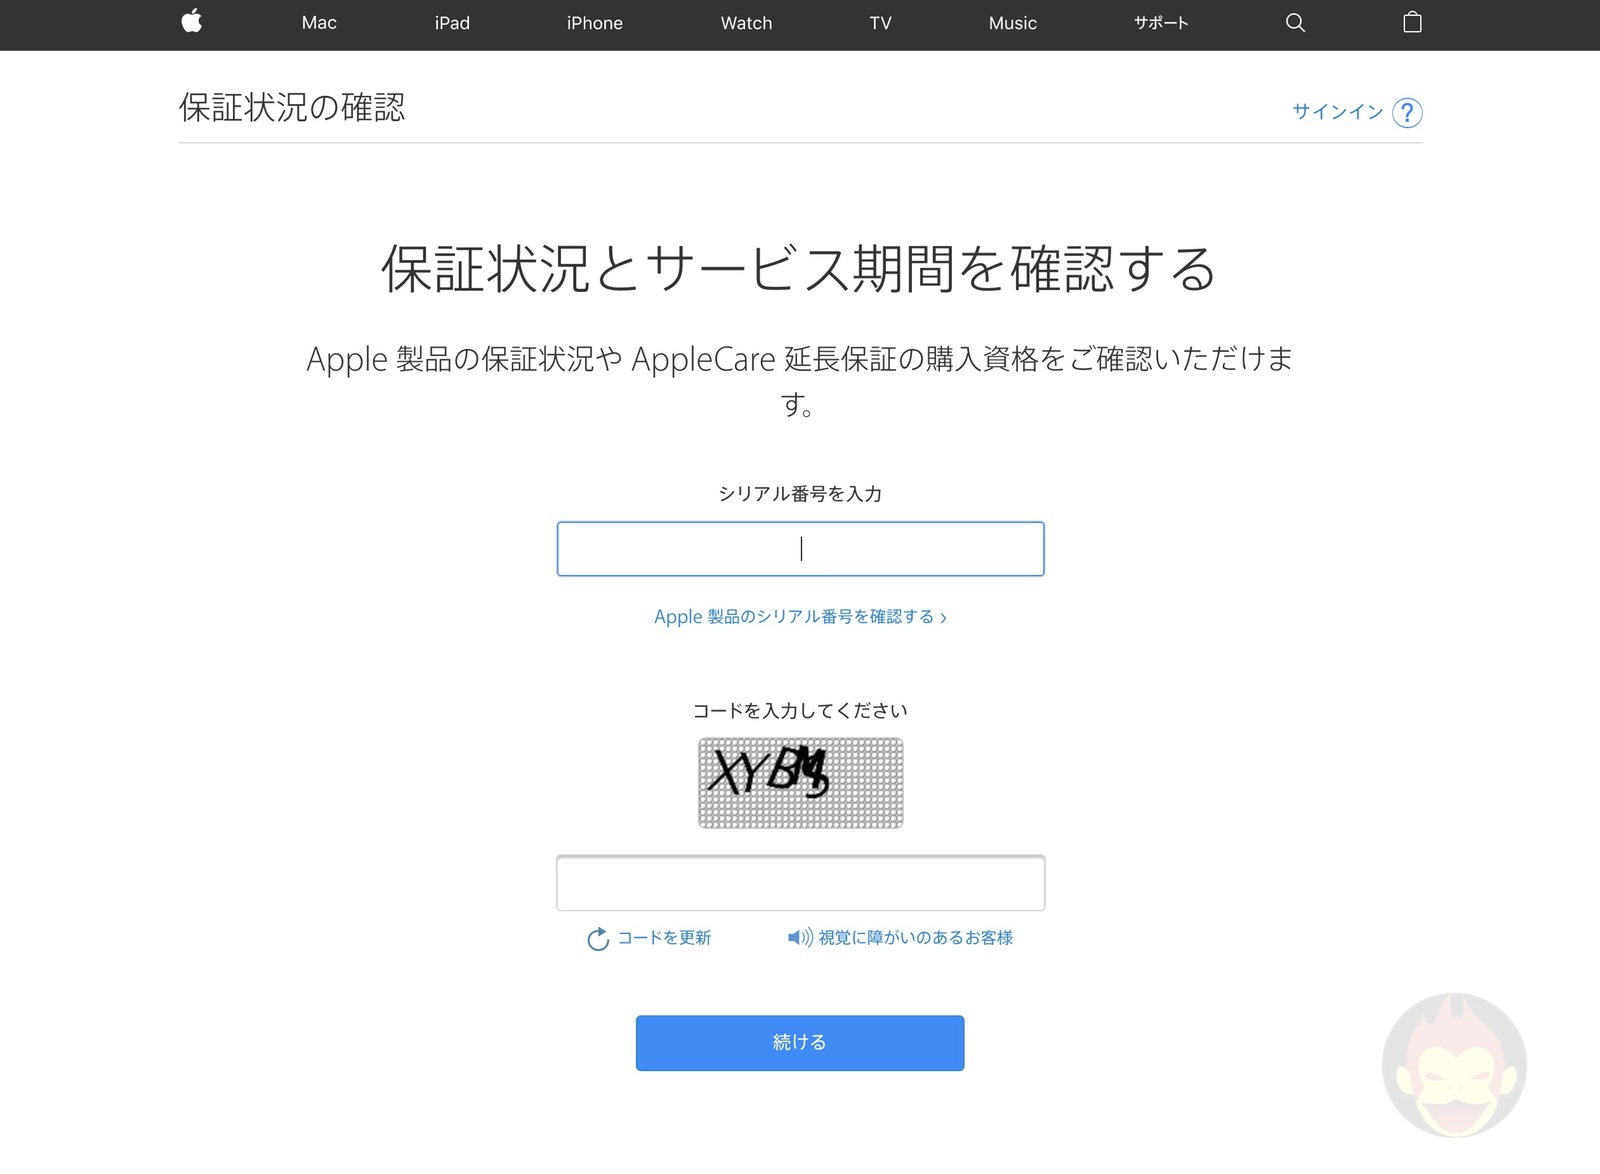 Mac-How-to-Check-Coverage-06.jpg